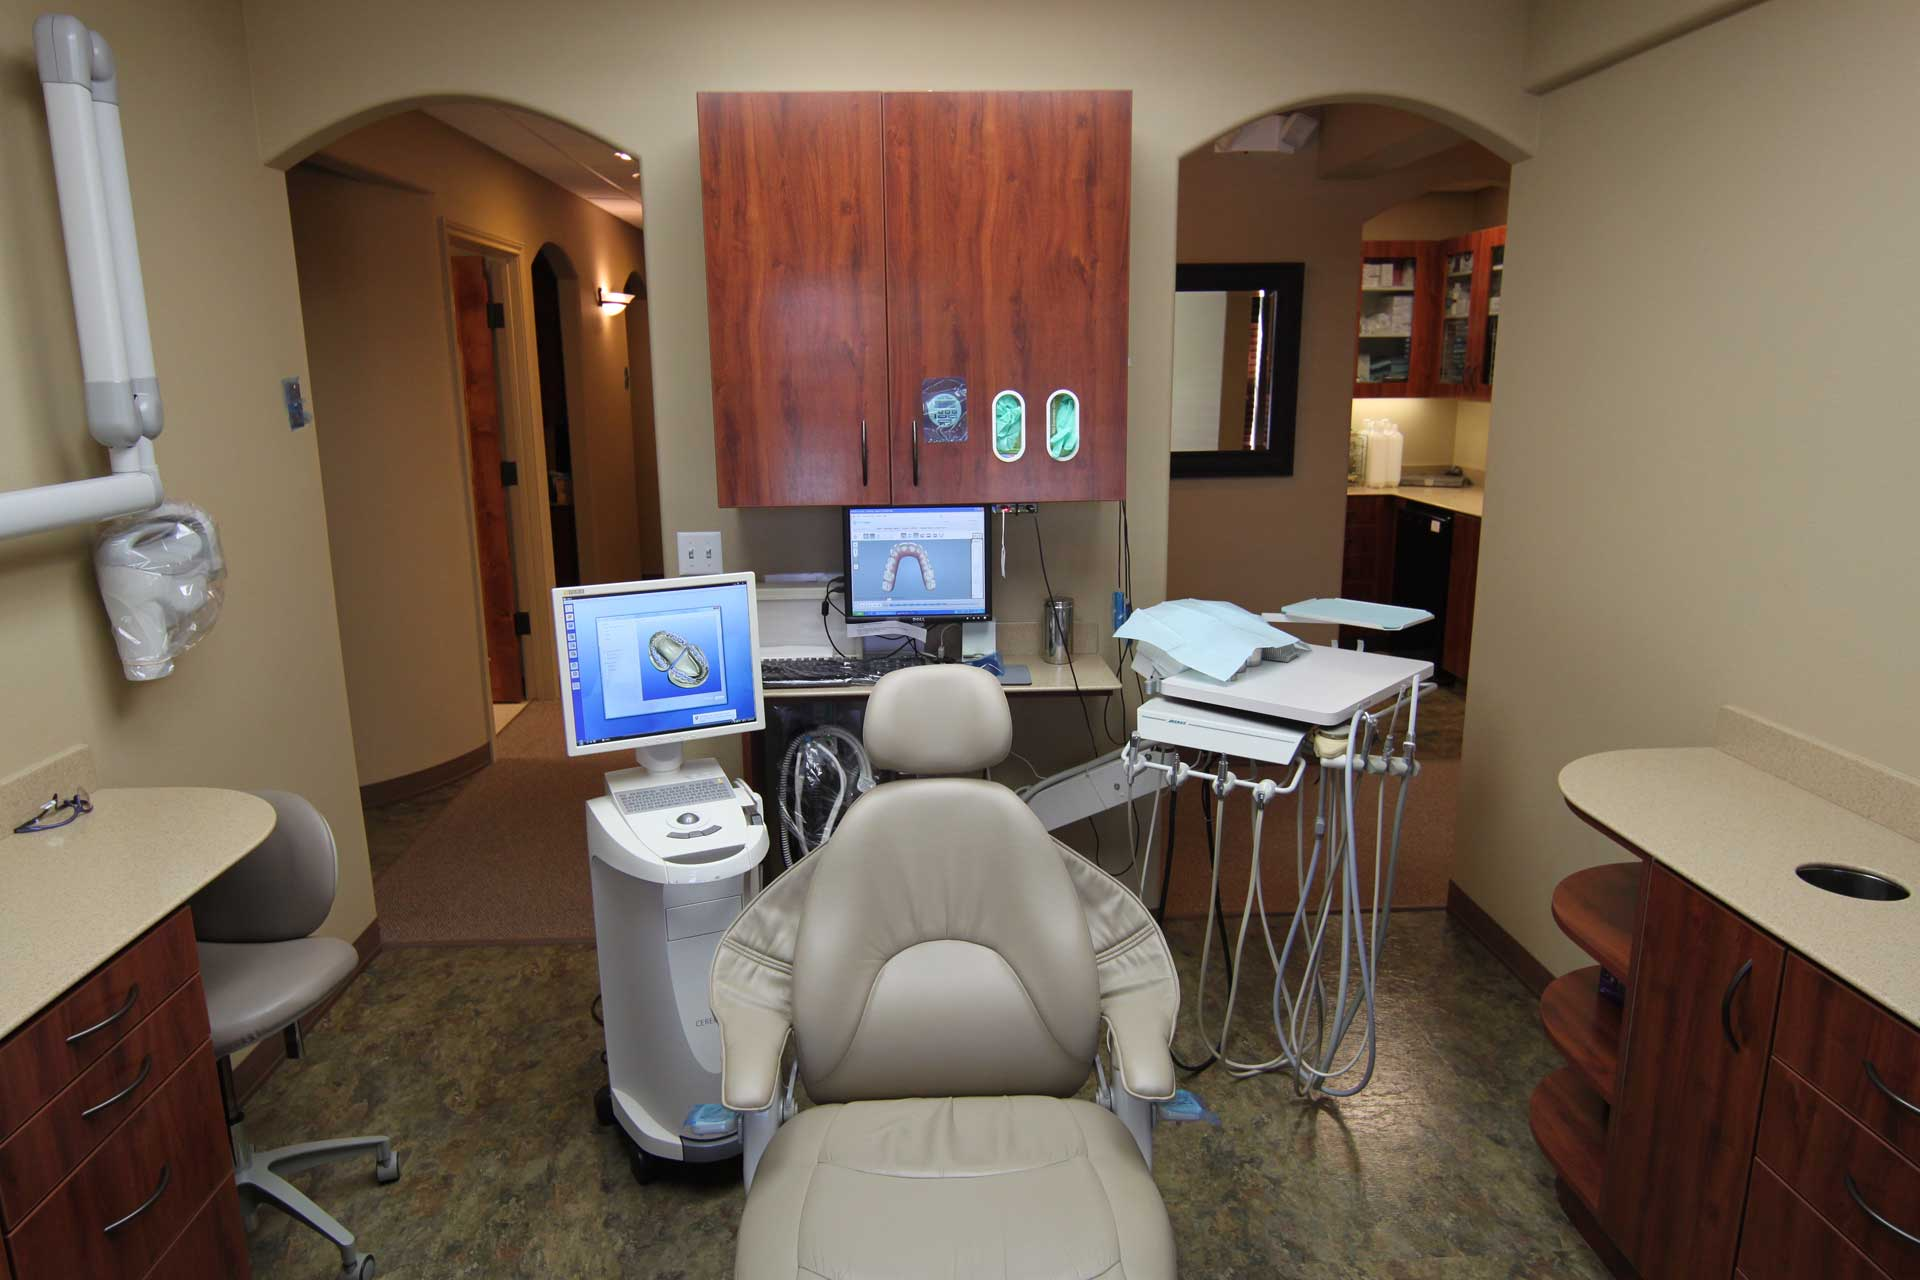 Operatory room and chair